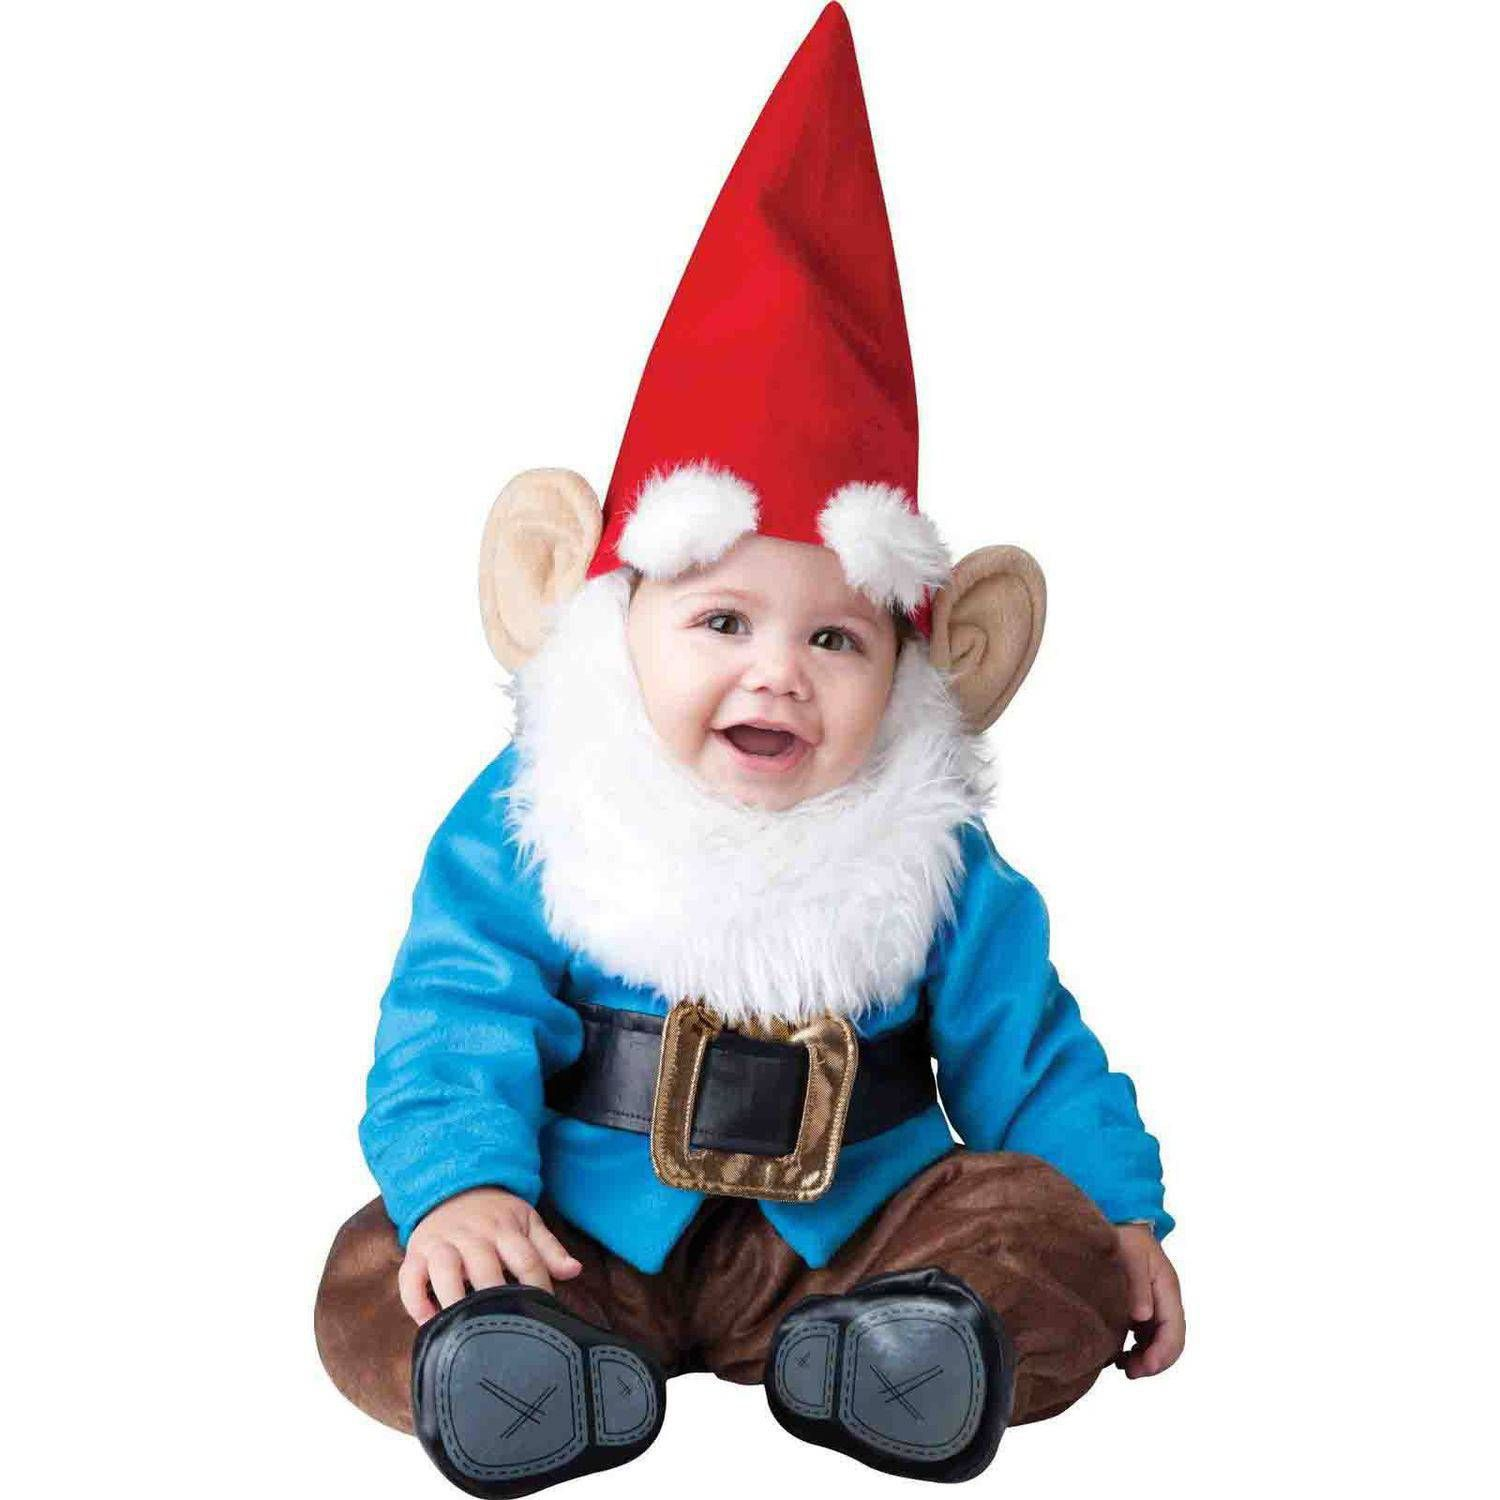 Lil Garden Gnome Infant Halloween Costume #gnomecostume